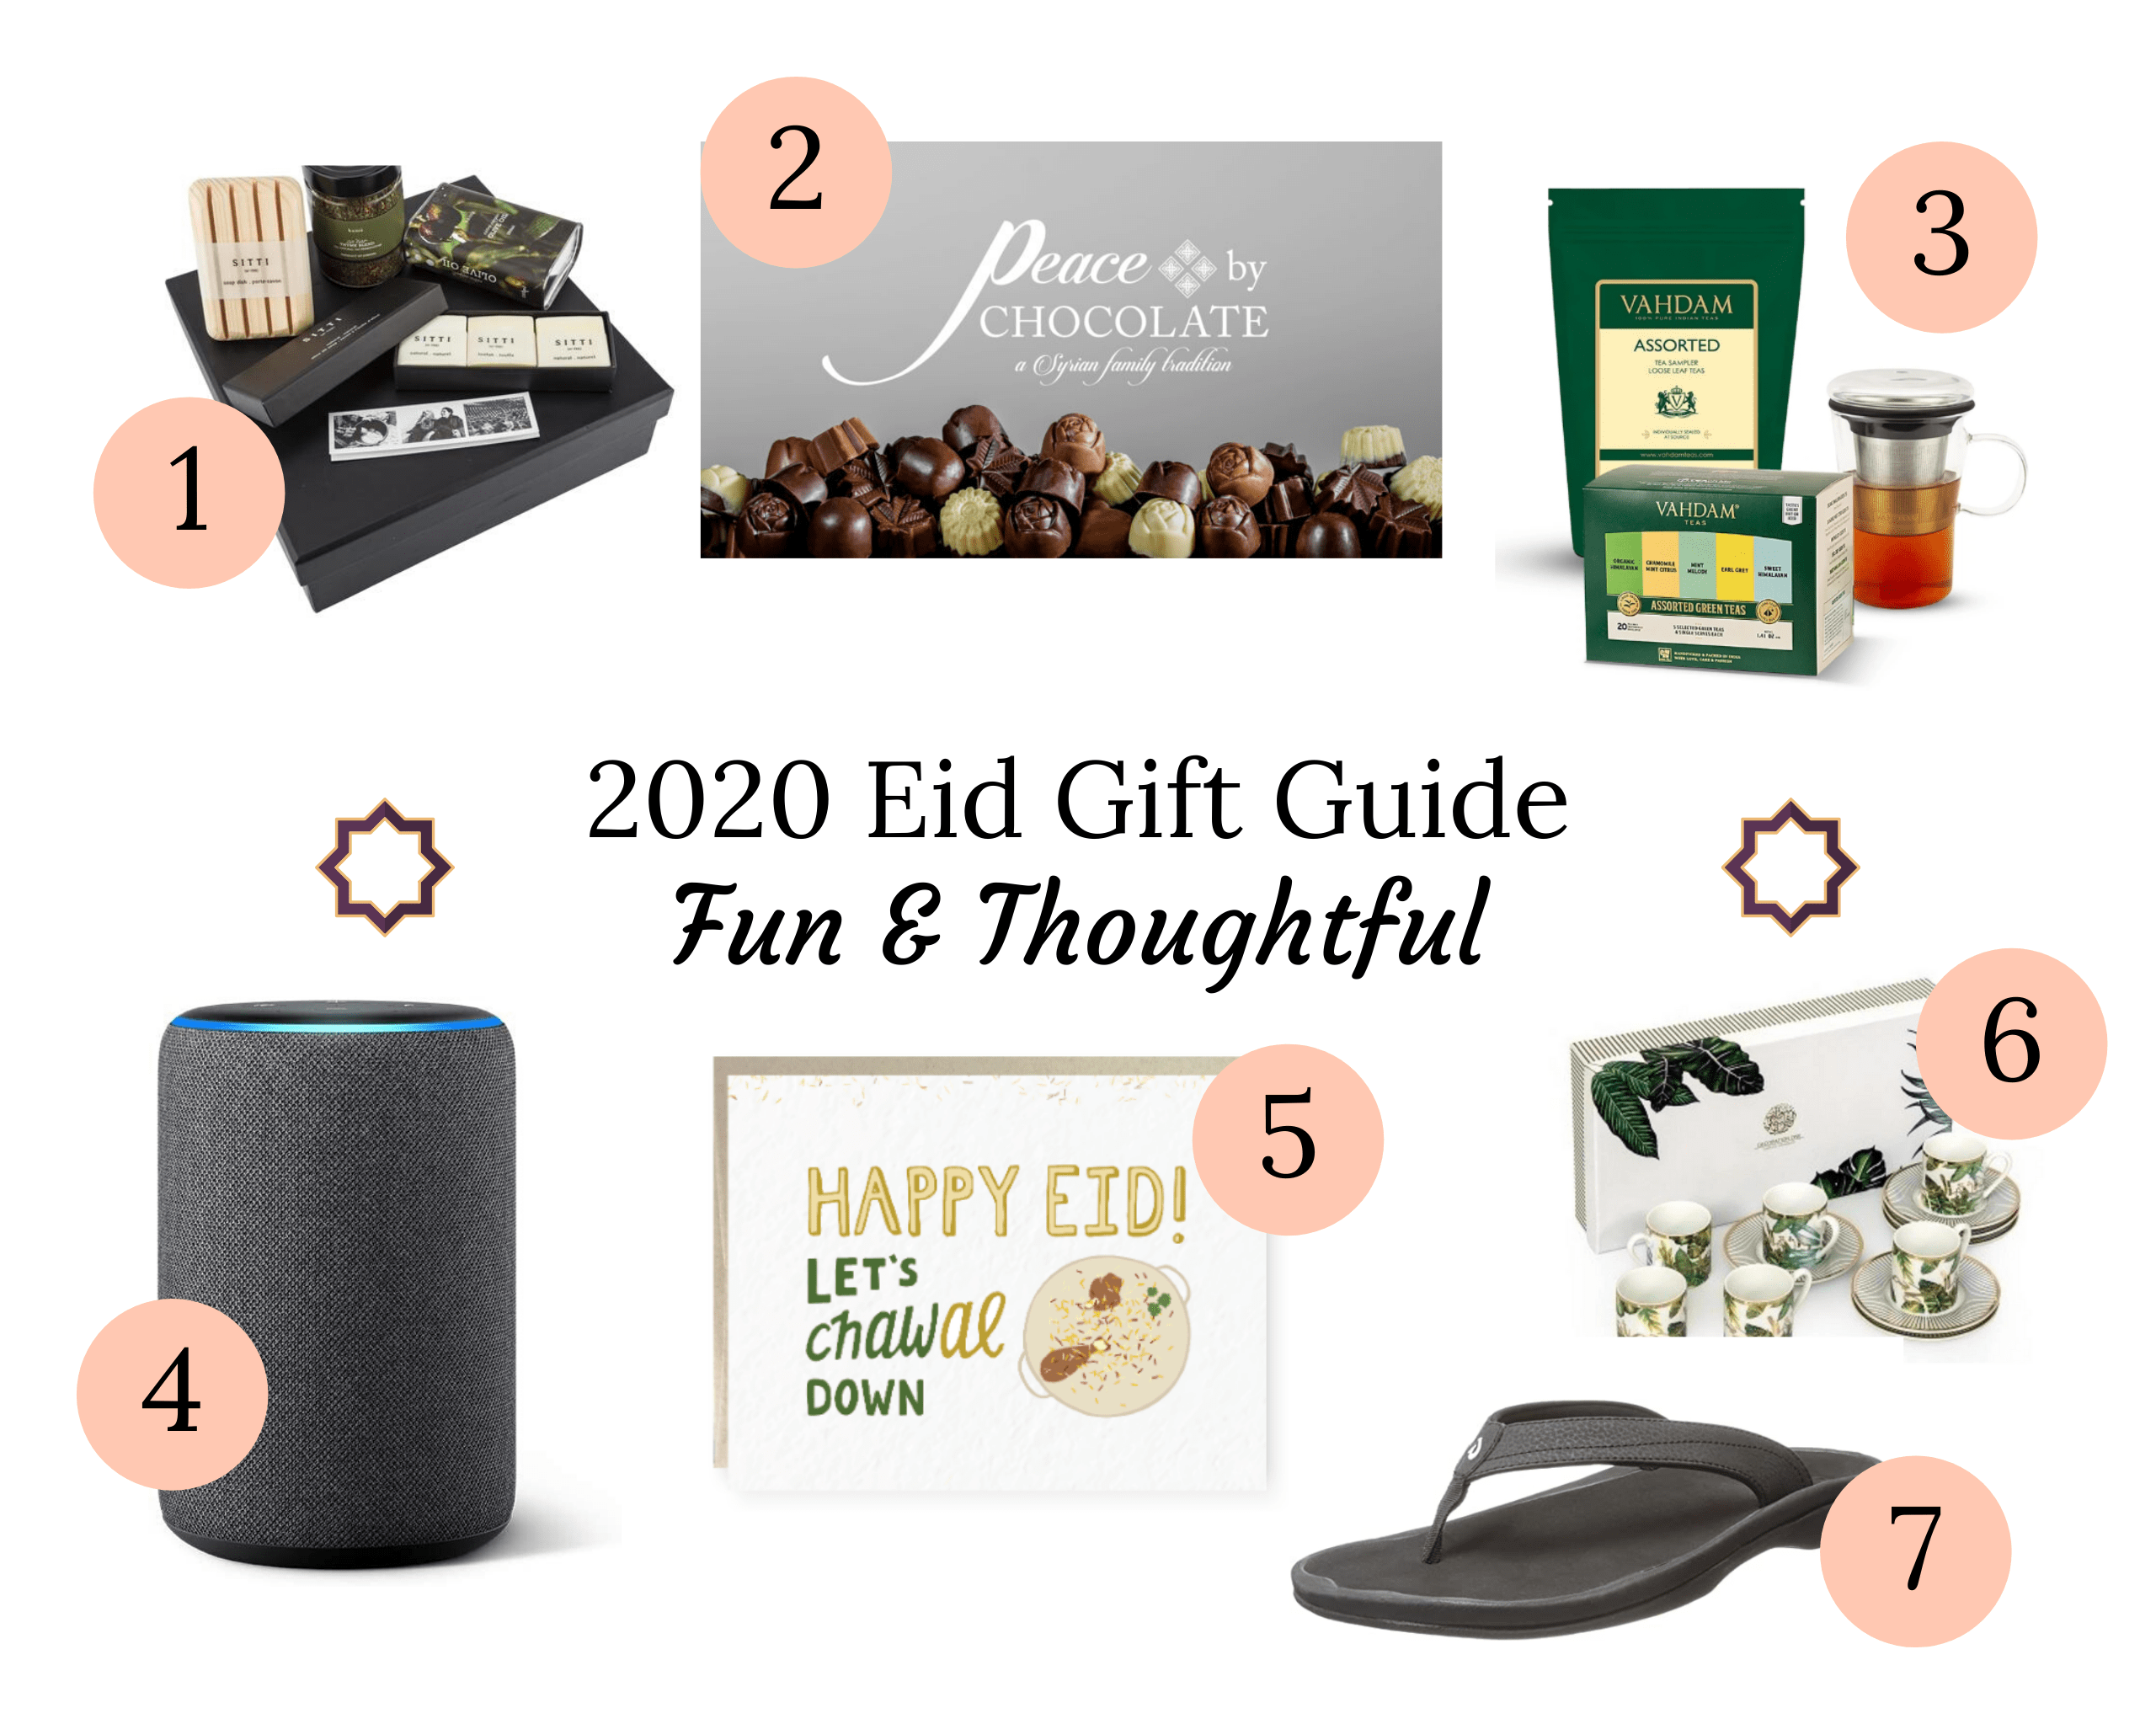 Fun and Thoughtful Eid Gift Guide Items in a collage